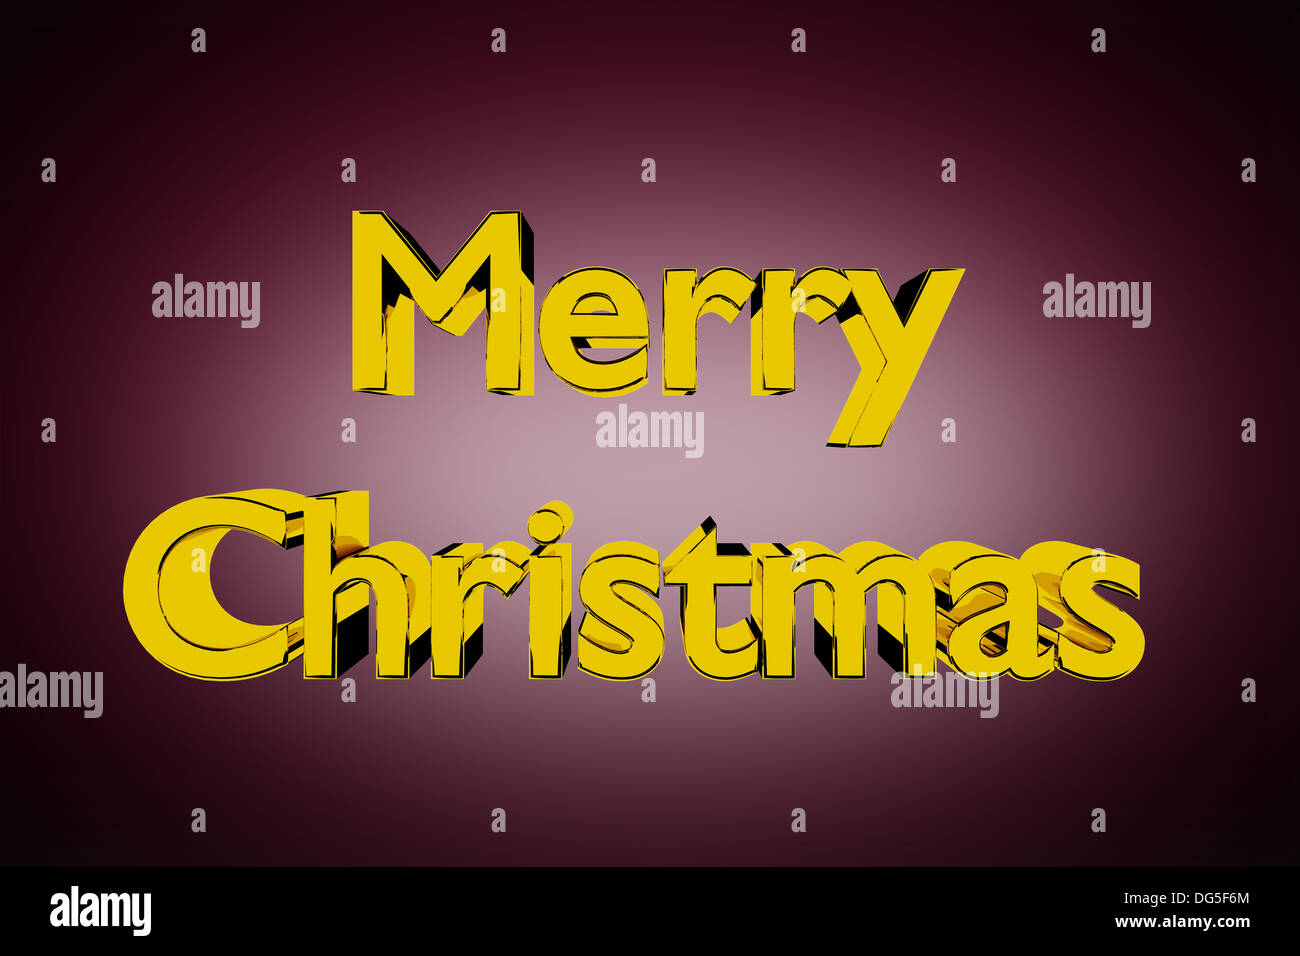 3D Illustration of golden Merry Christmas lettering on a red background - Stock Image